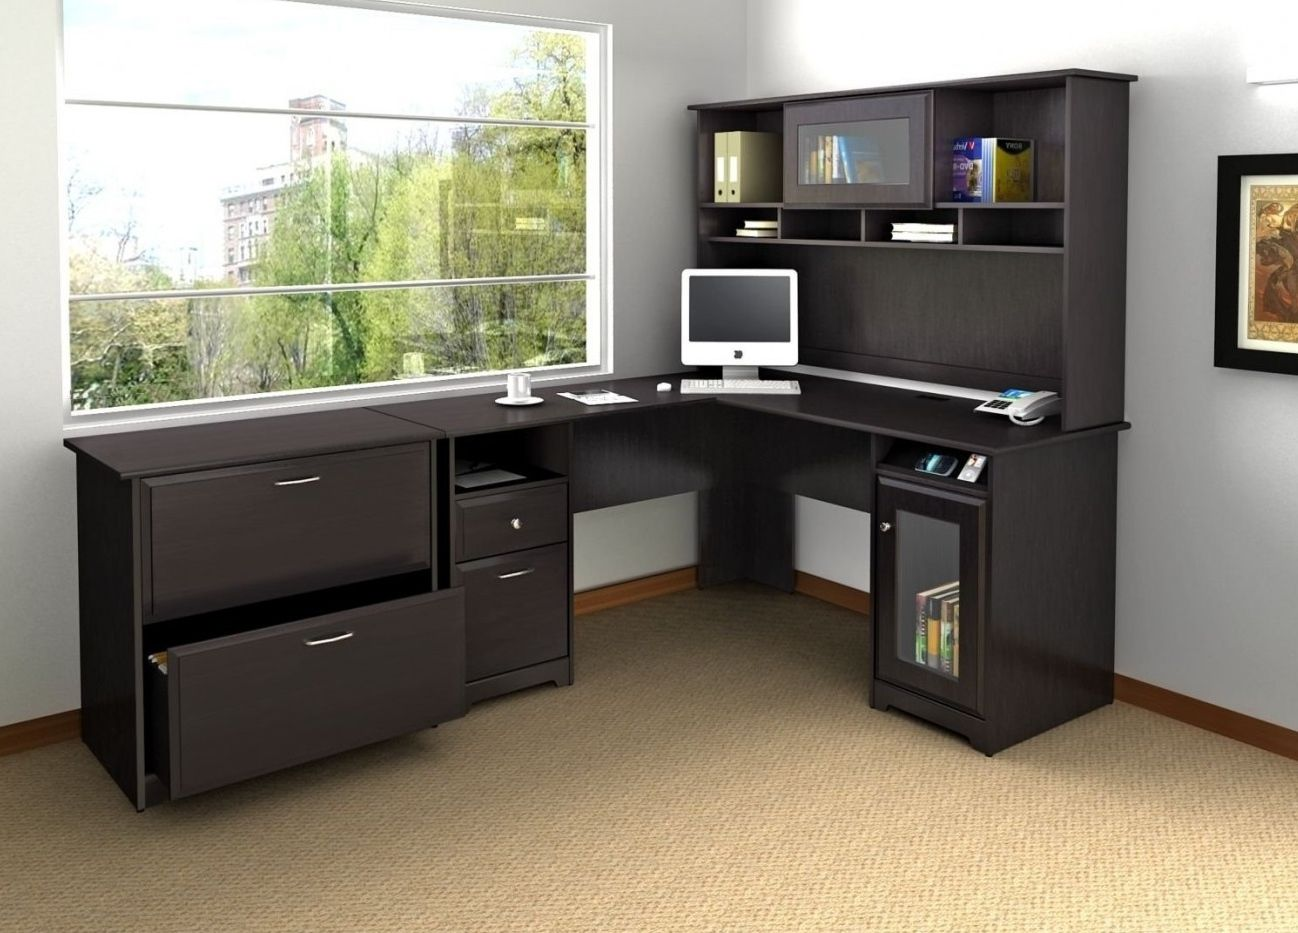 corner office cabinet. Home Office Corner Desks - Executive Furniture Check More At Http:// Cabinet Pinterest